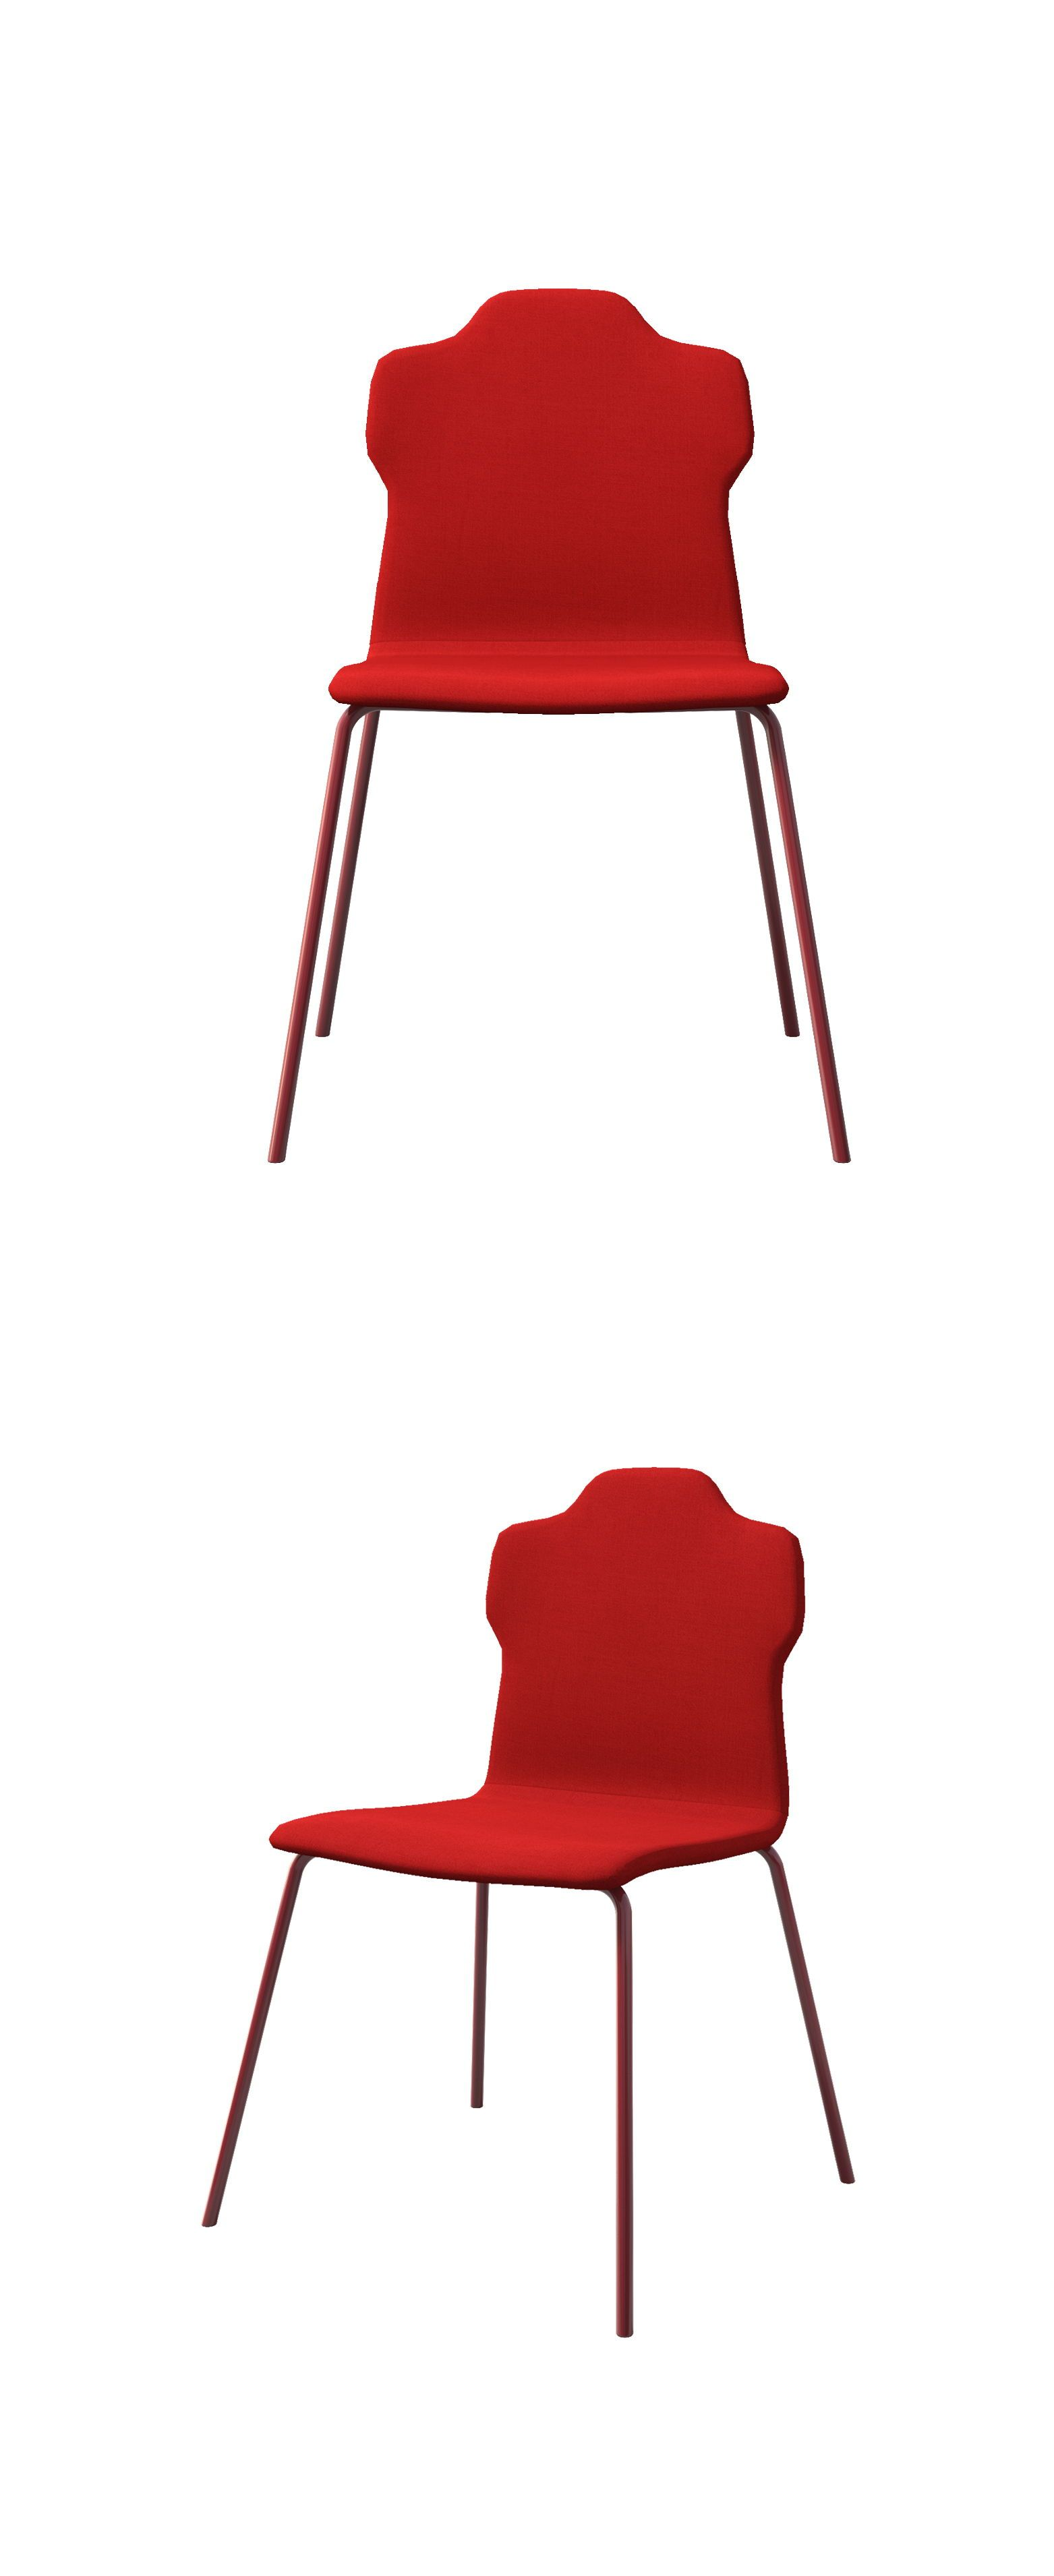 Modern Style Dining Chair Red Series Conventional Stainless